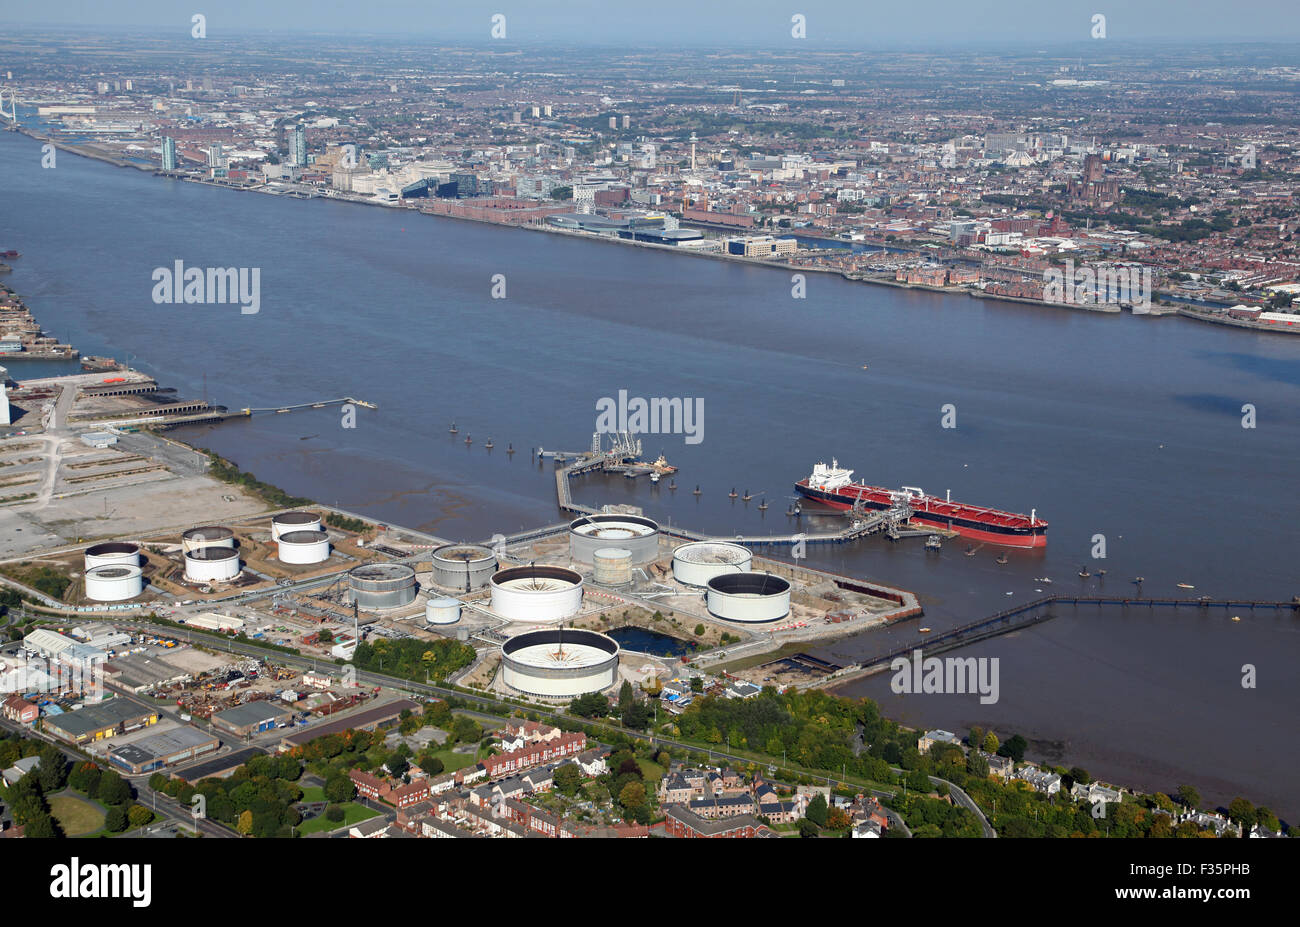 aerial view of Tranmere Oil Terminal on the Wirral on the River Mersey, UK - Stock Image